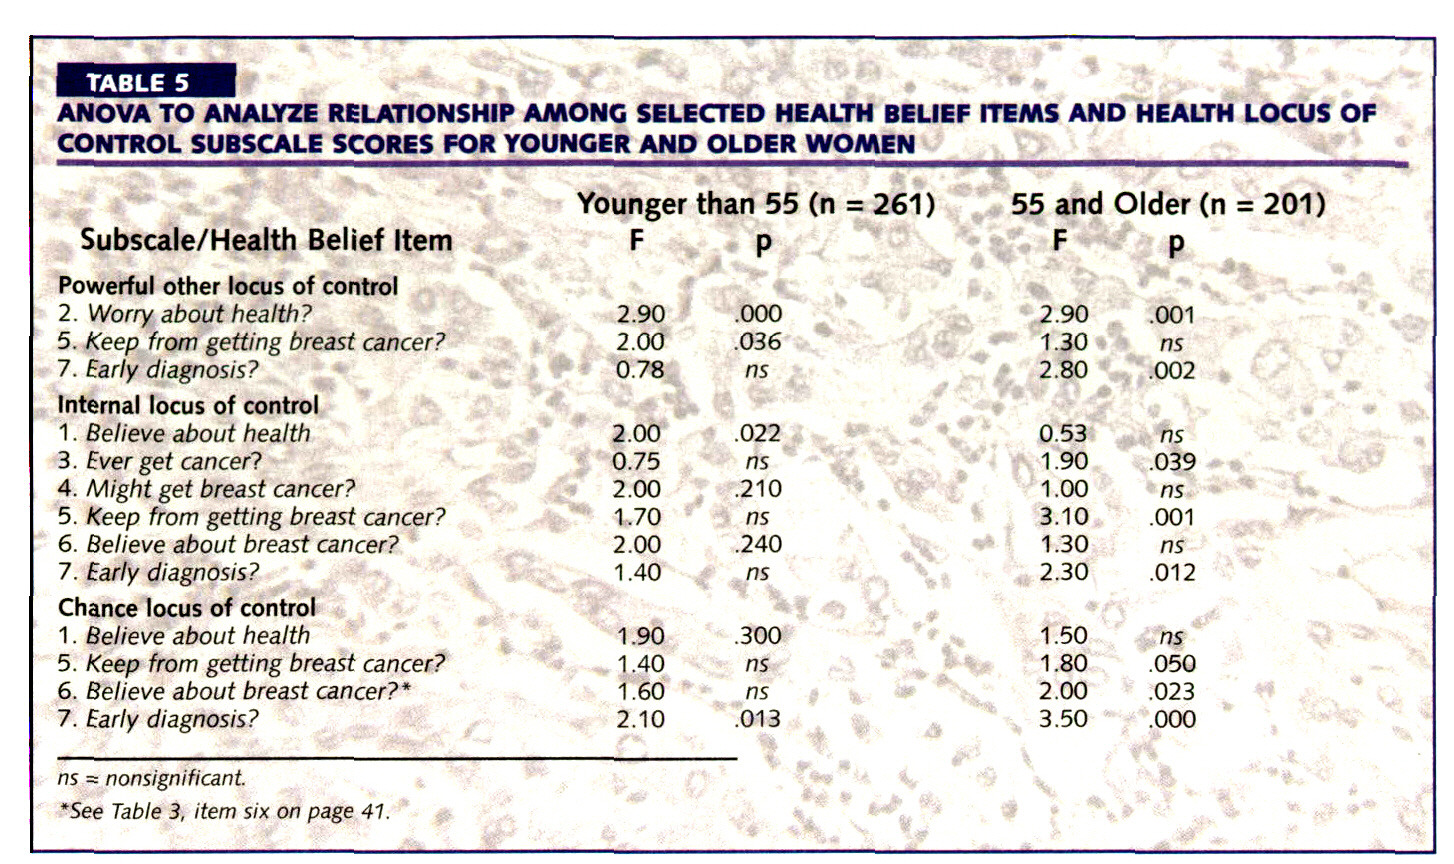 TABLE 5ANOVA TO ANALYZE RELATIONSHIP AMONG SELECTED HEALTH BELIEF ITEMS AND HEALTH LOCUS OF CONTROL SUBSCALE SCORES FOR YOUNGER AND OLDER WOMEN